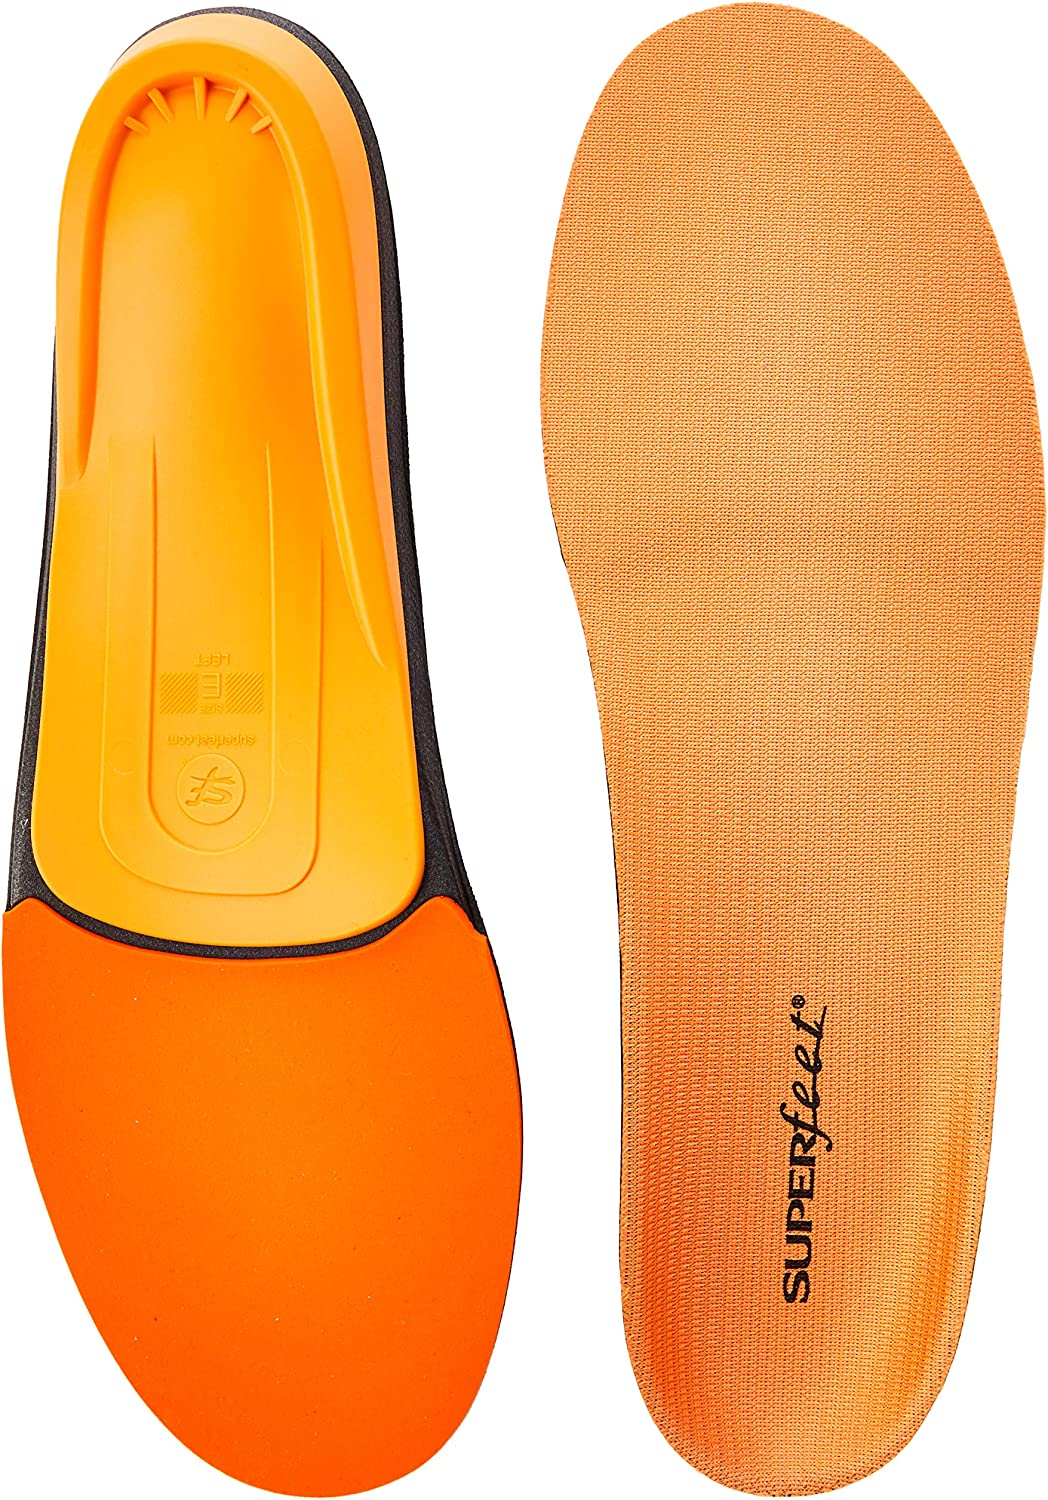 B000KHTGUI Superfeet ORANGE Insoles, High Arch Support and Forefoot Cushion, Orthotic Shoe Inserts for Anti-fatigue, Unisex, Orange 91TQySjnuiL